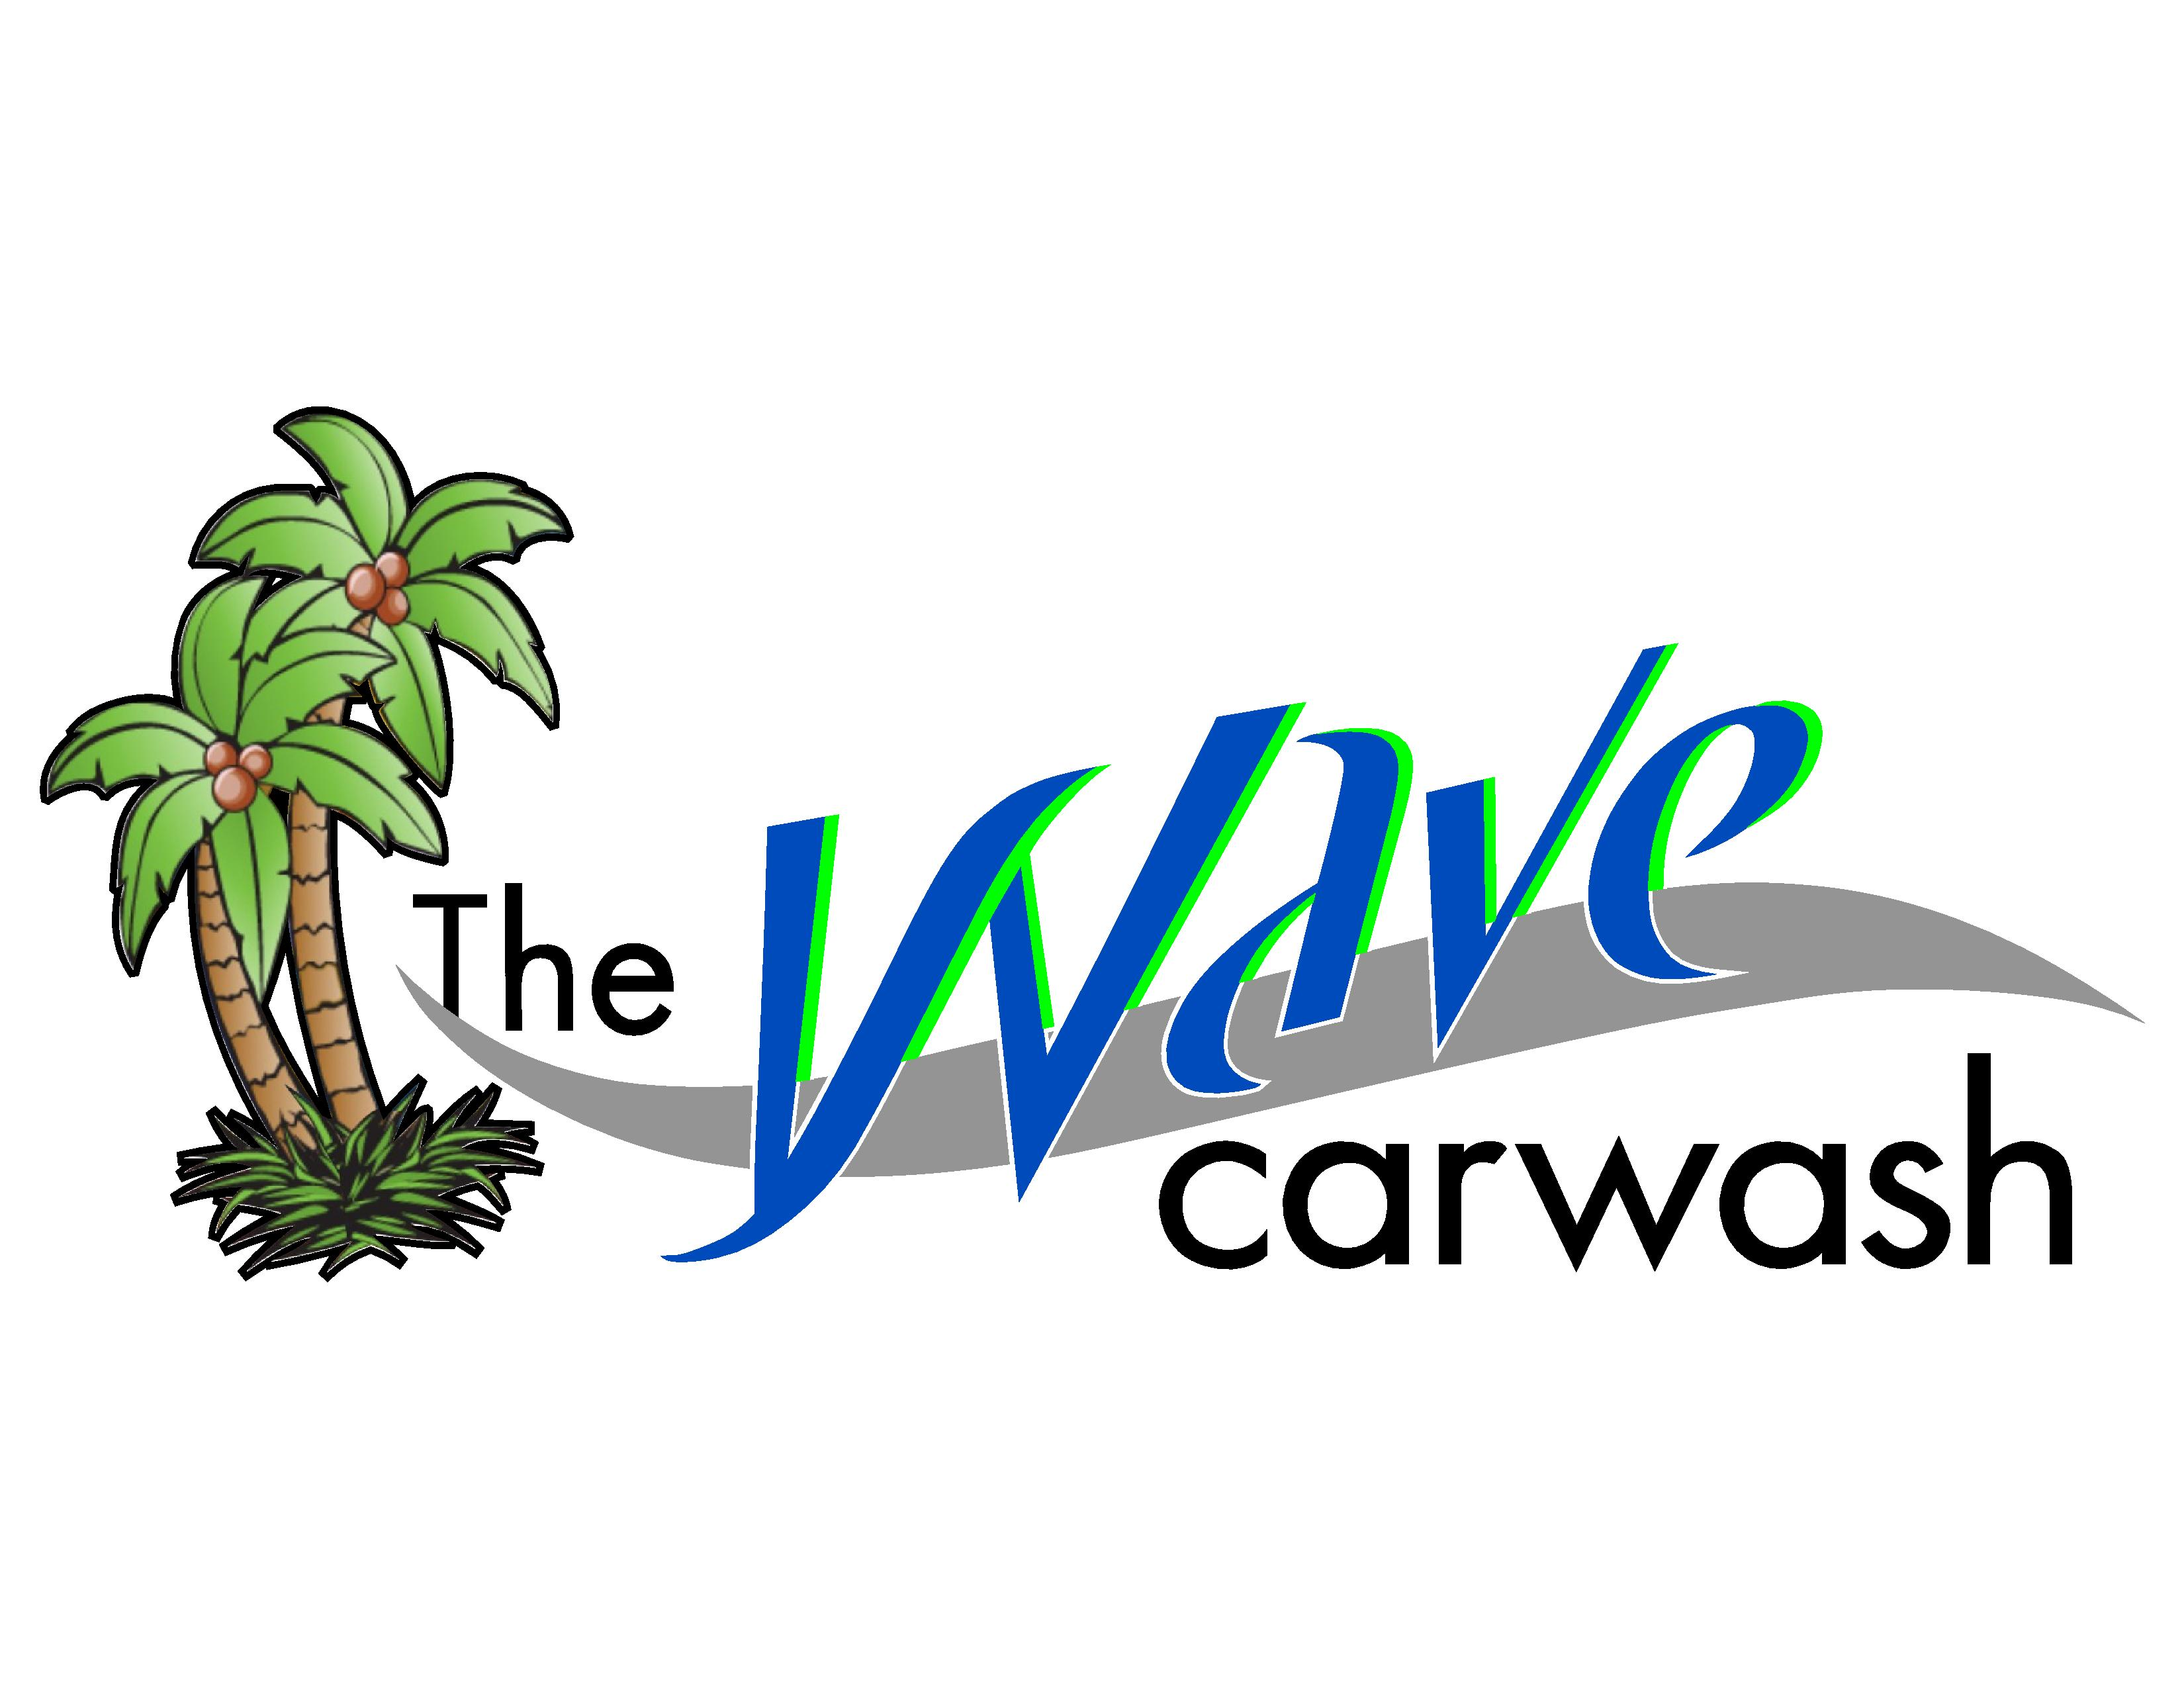 The wave car wash professional express exterior car wash solutioingenieria Image collections